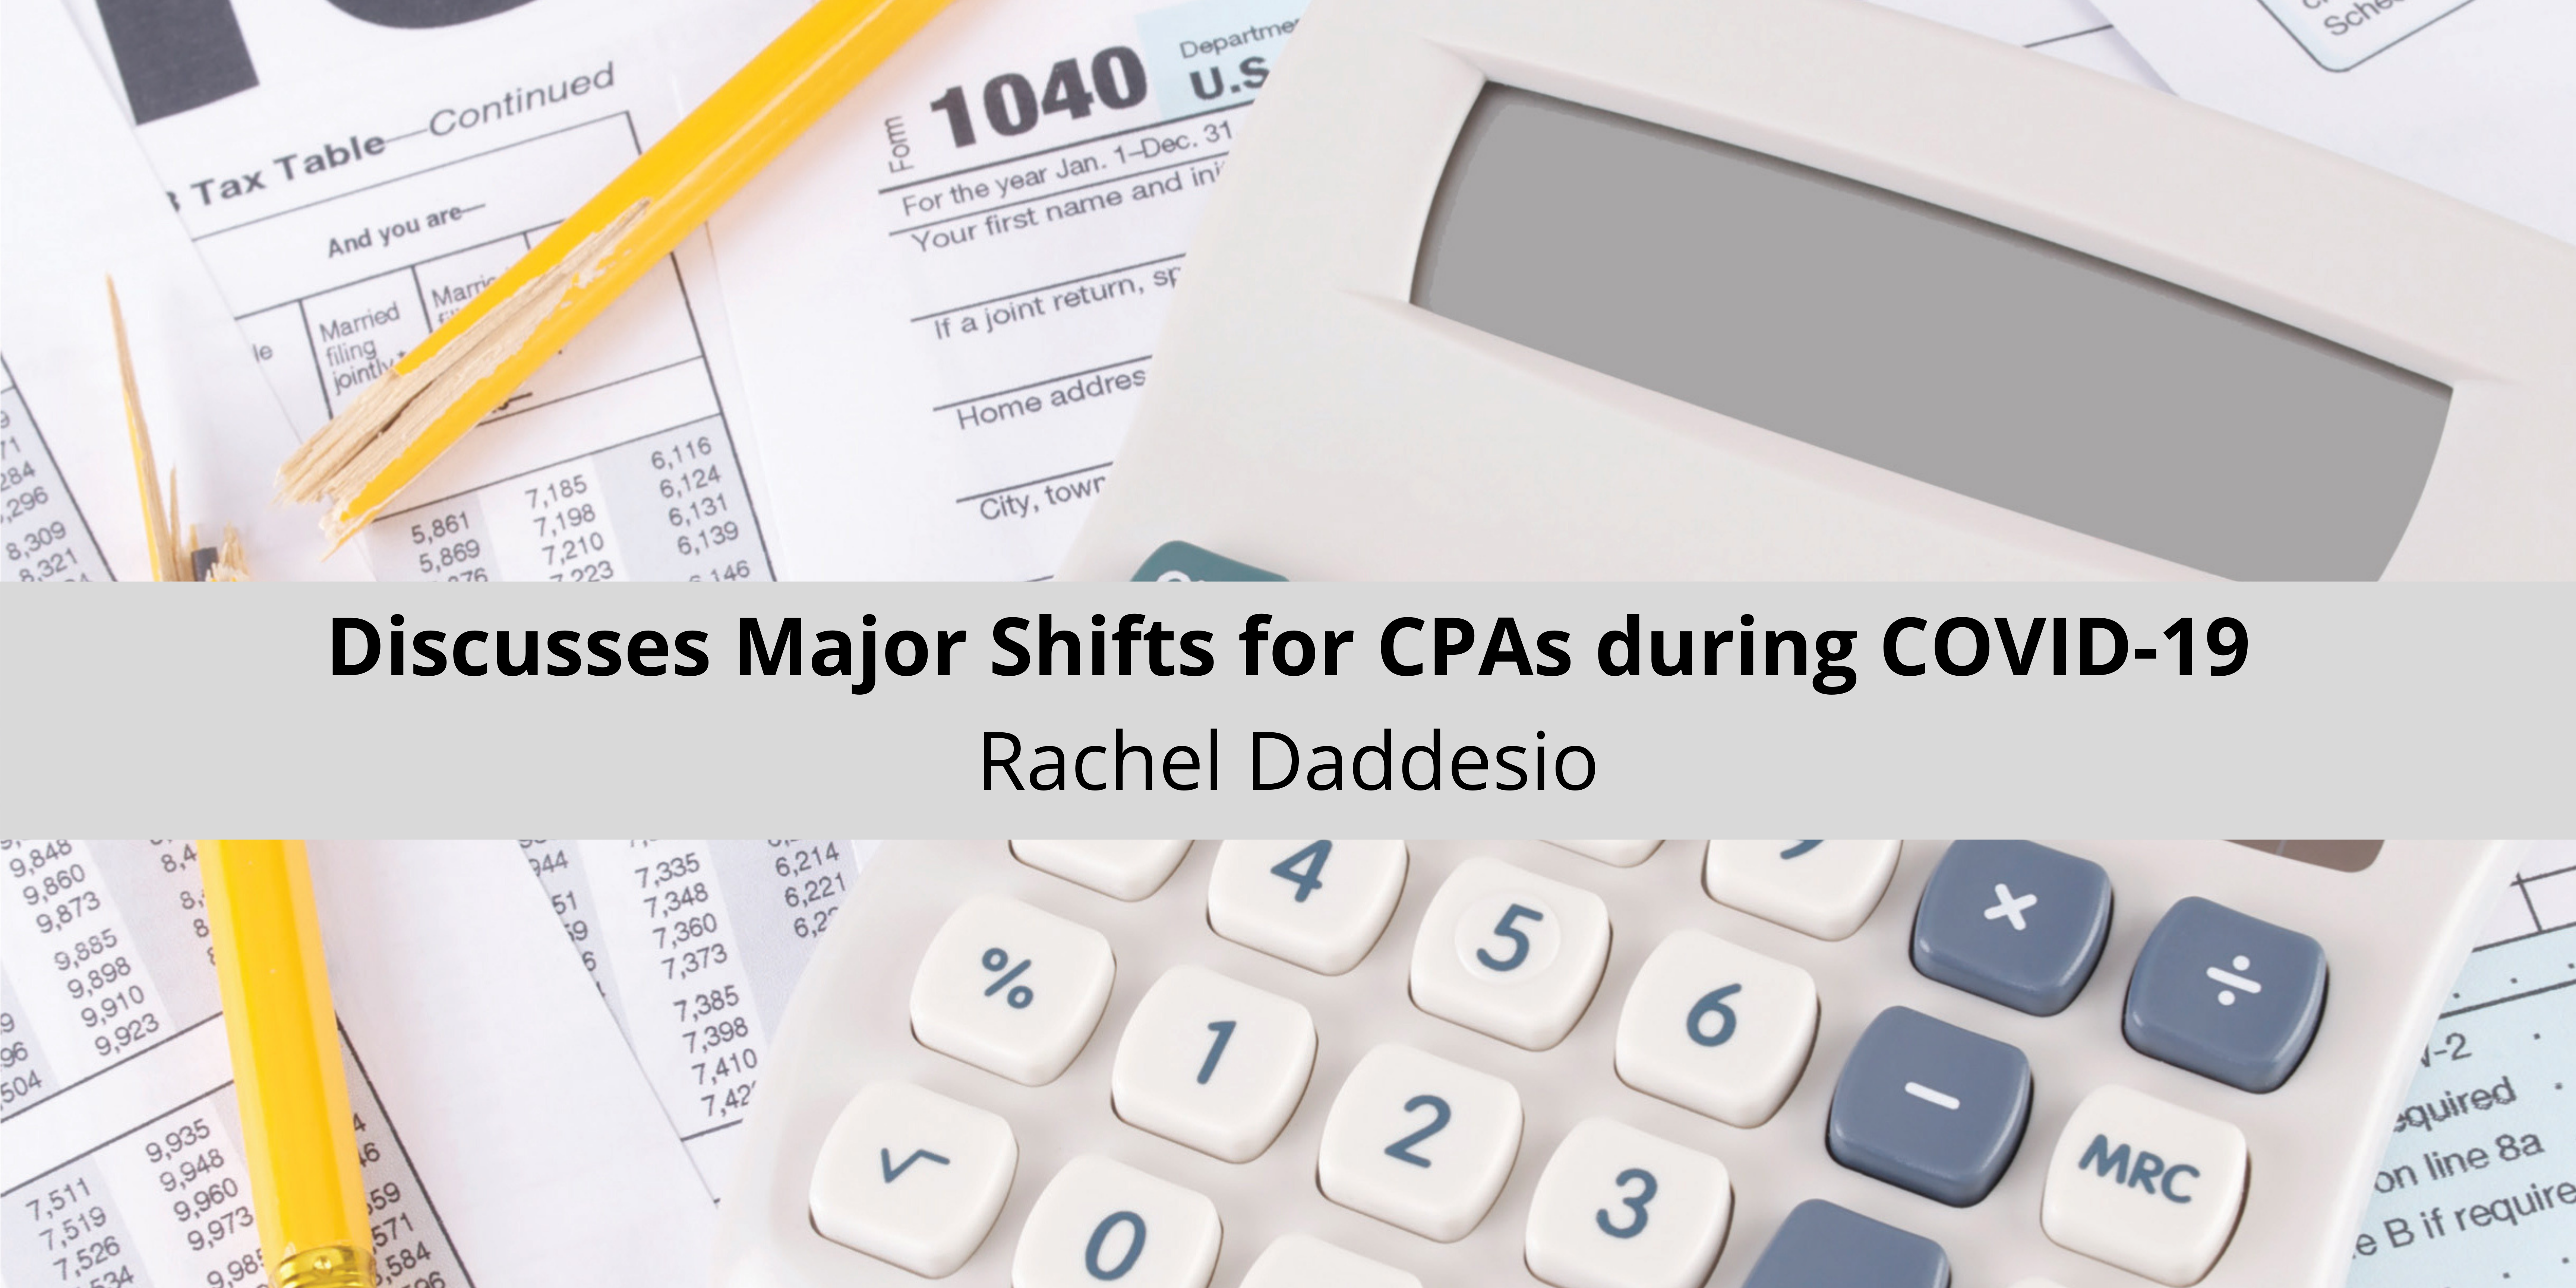 Rachel Daddesio of Montgomery Discusses Major Shifts for CPAs during COVID-19